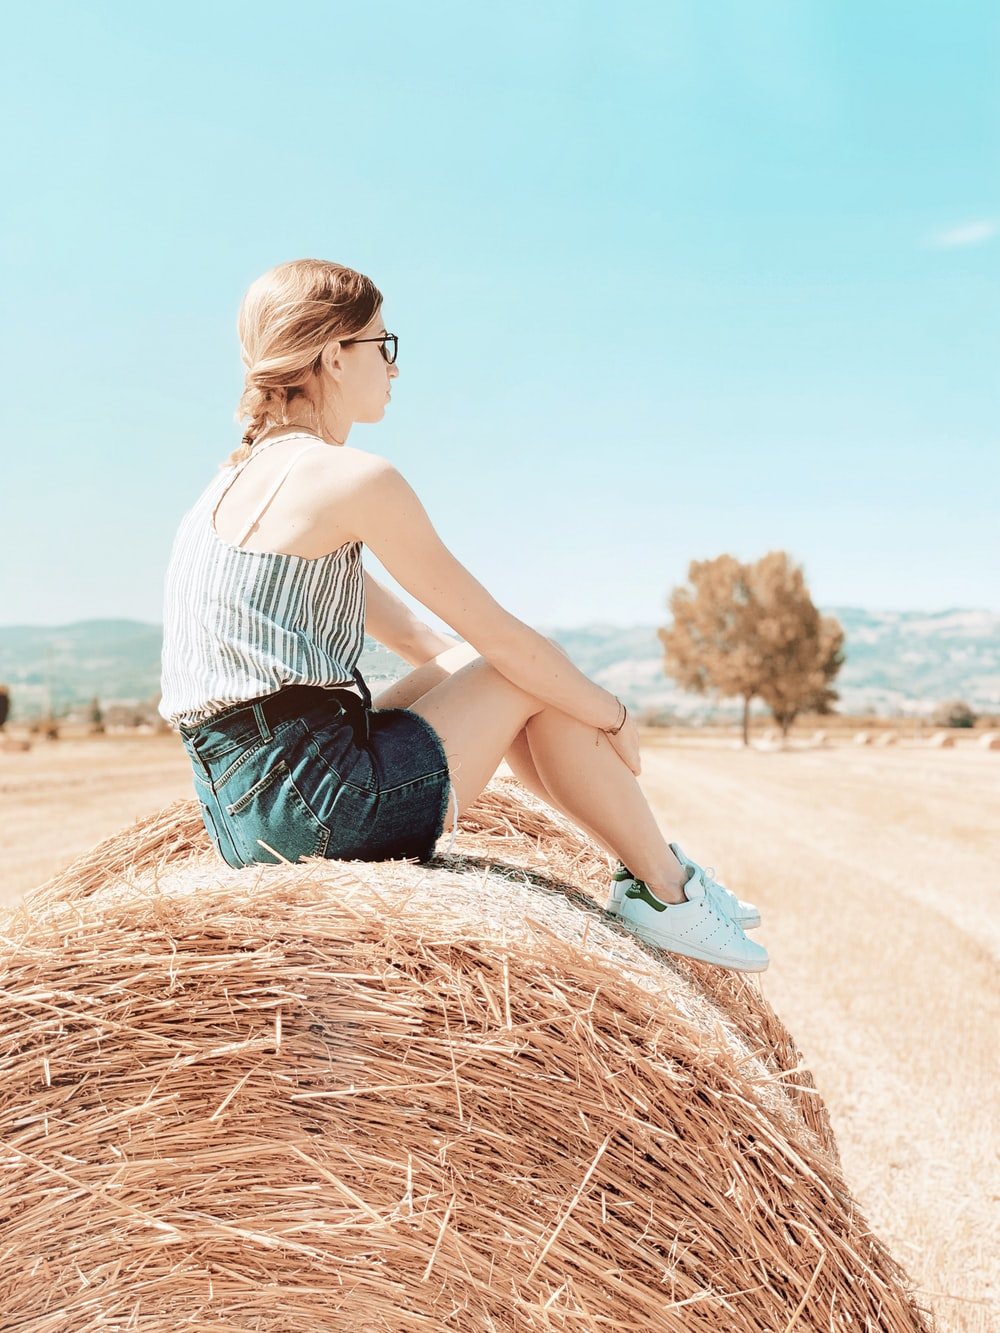 woman in white top sitting on hay